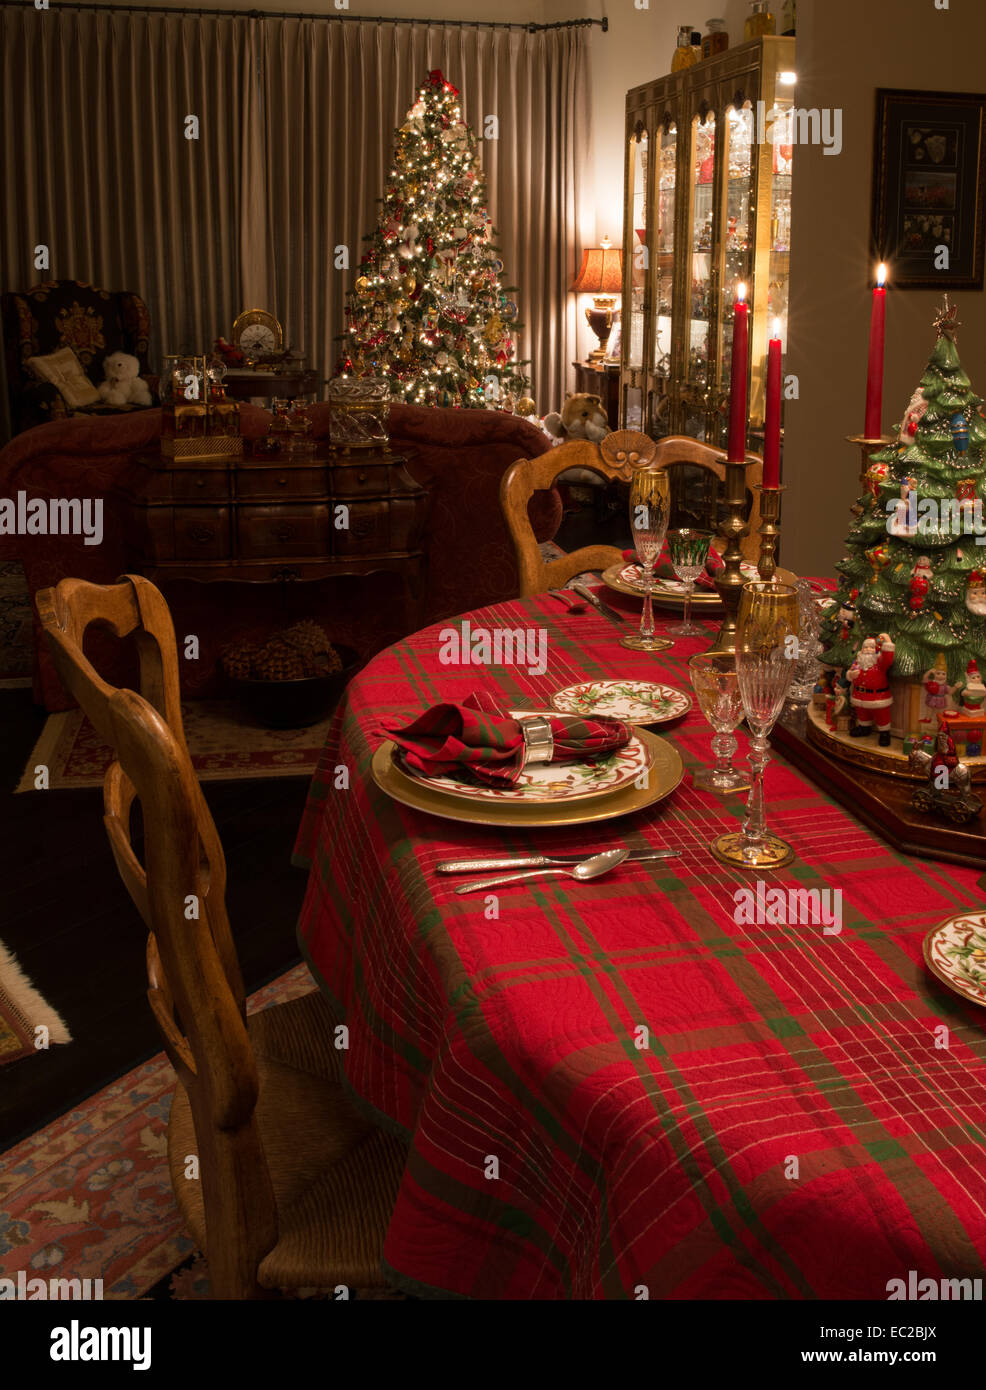 Christmas dinner table set with decorated Christmas tree in background